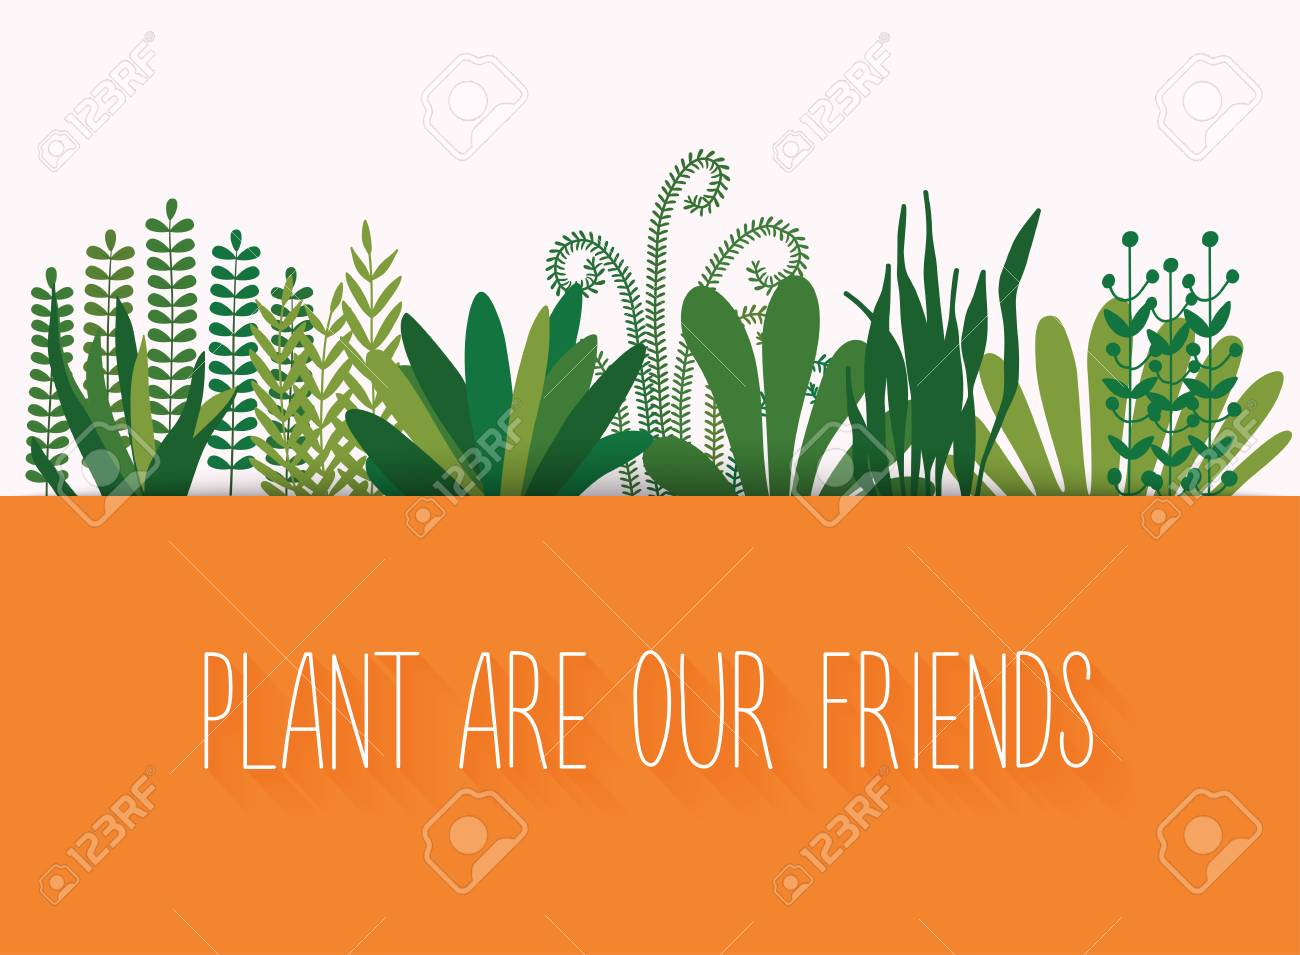 Plant Are Our Friends Set Of Decorative Plants Green Concept